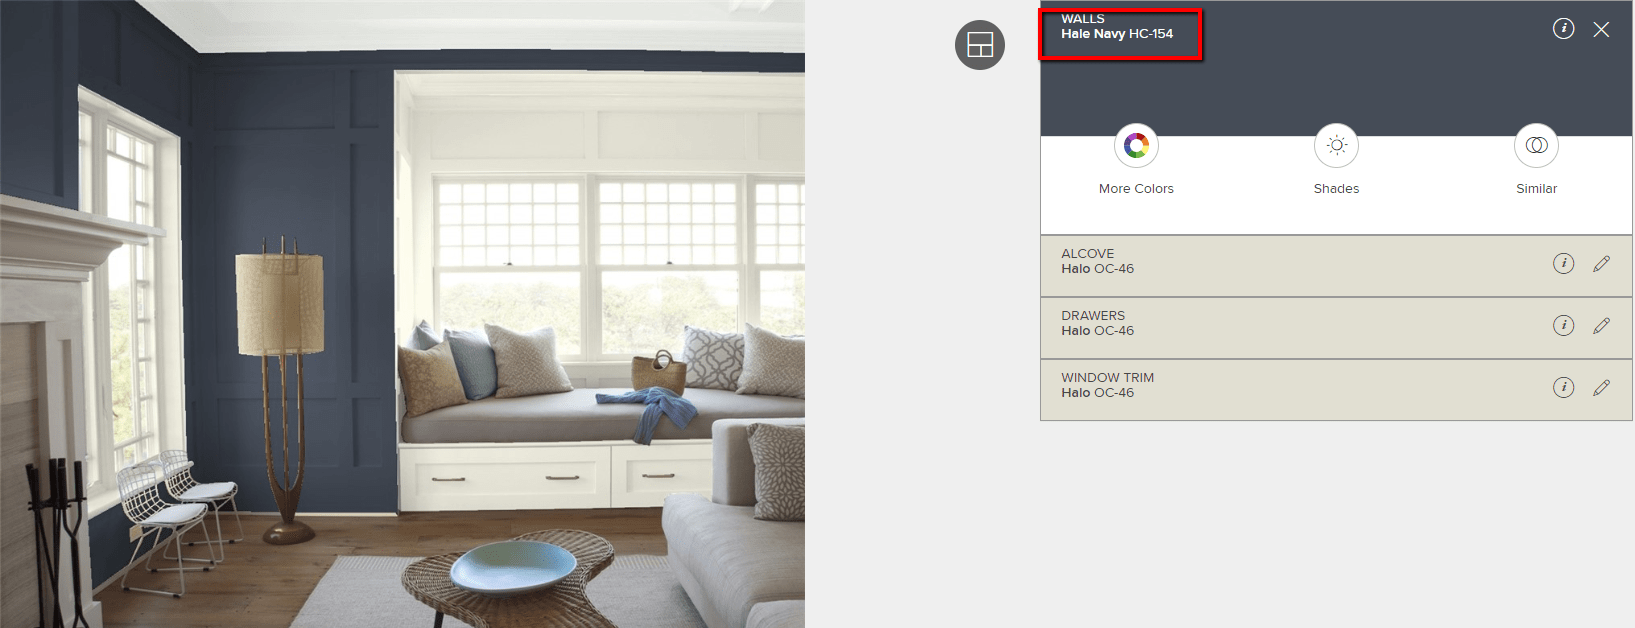 Interior Design Trends for paint colors in 2020